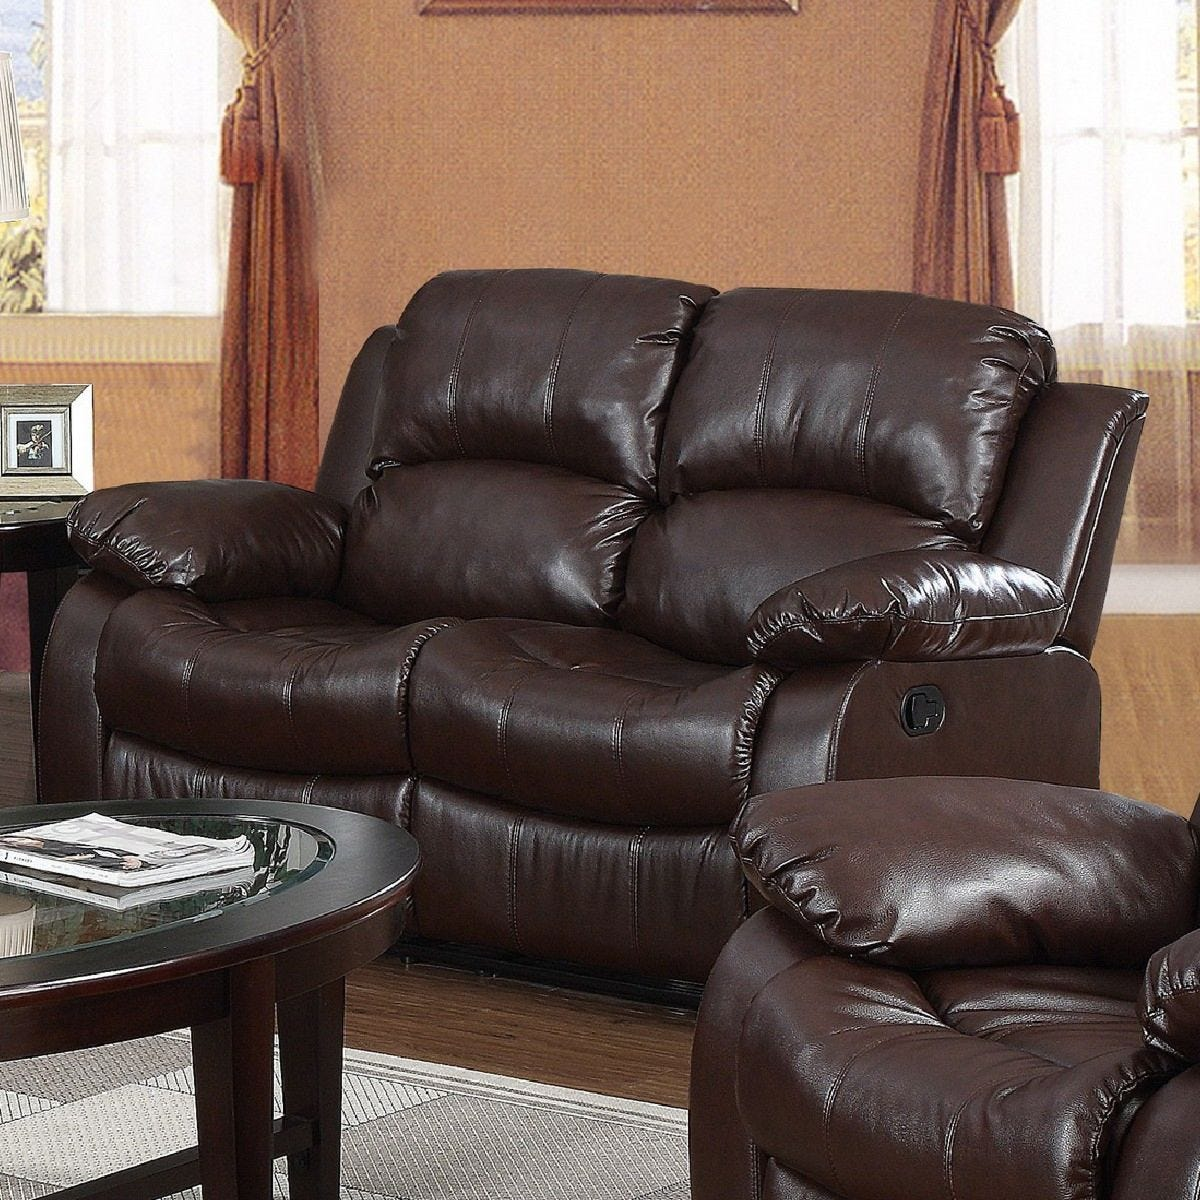 Calne Faux Leather 2 Seater Reclining Sofa Brown